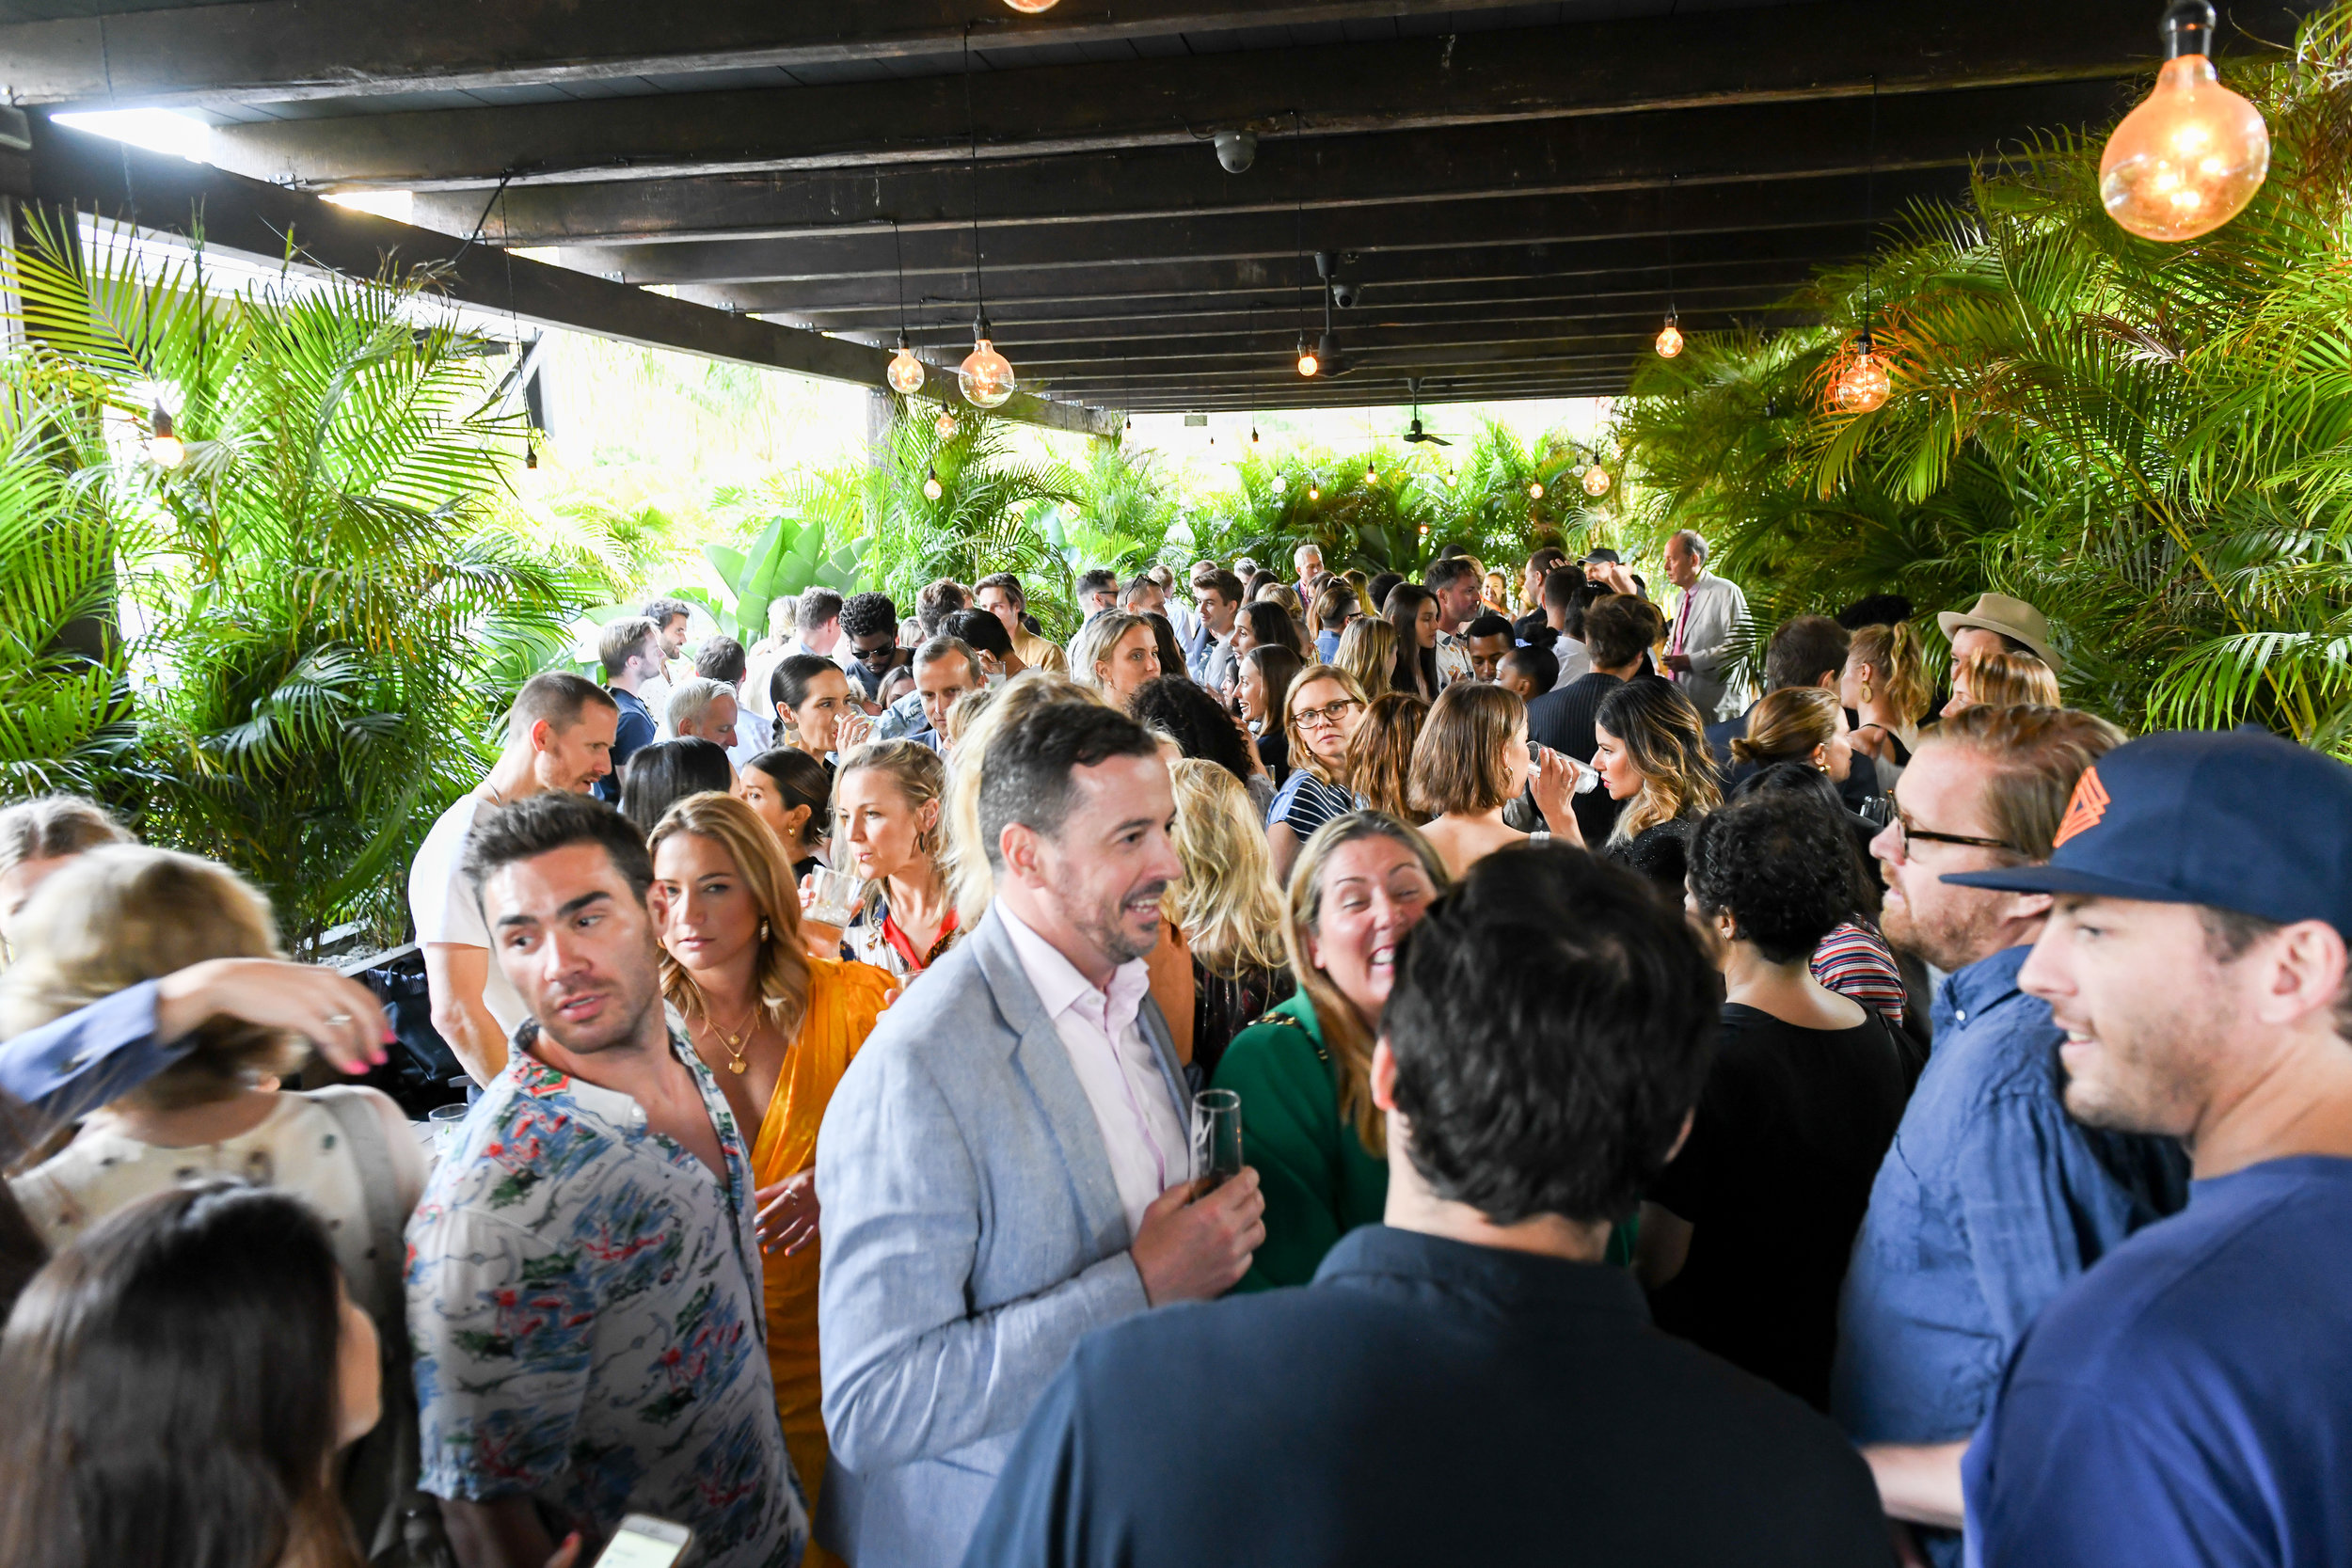 The Australian Fashion Foundation Summer Party. Image by Joe Schildhorn/BFA